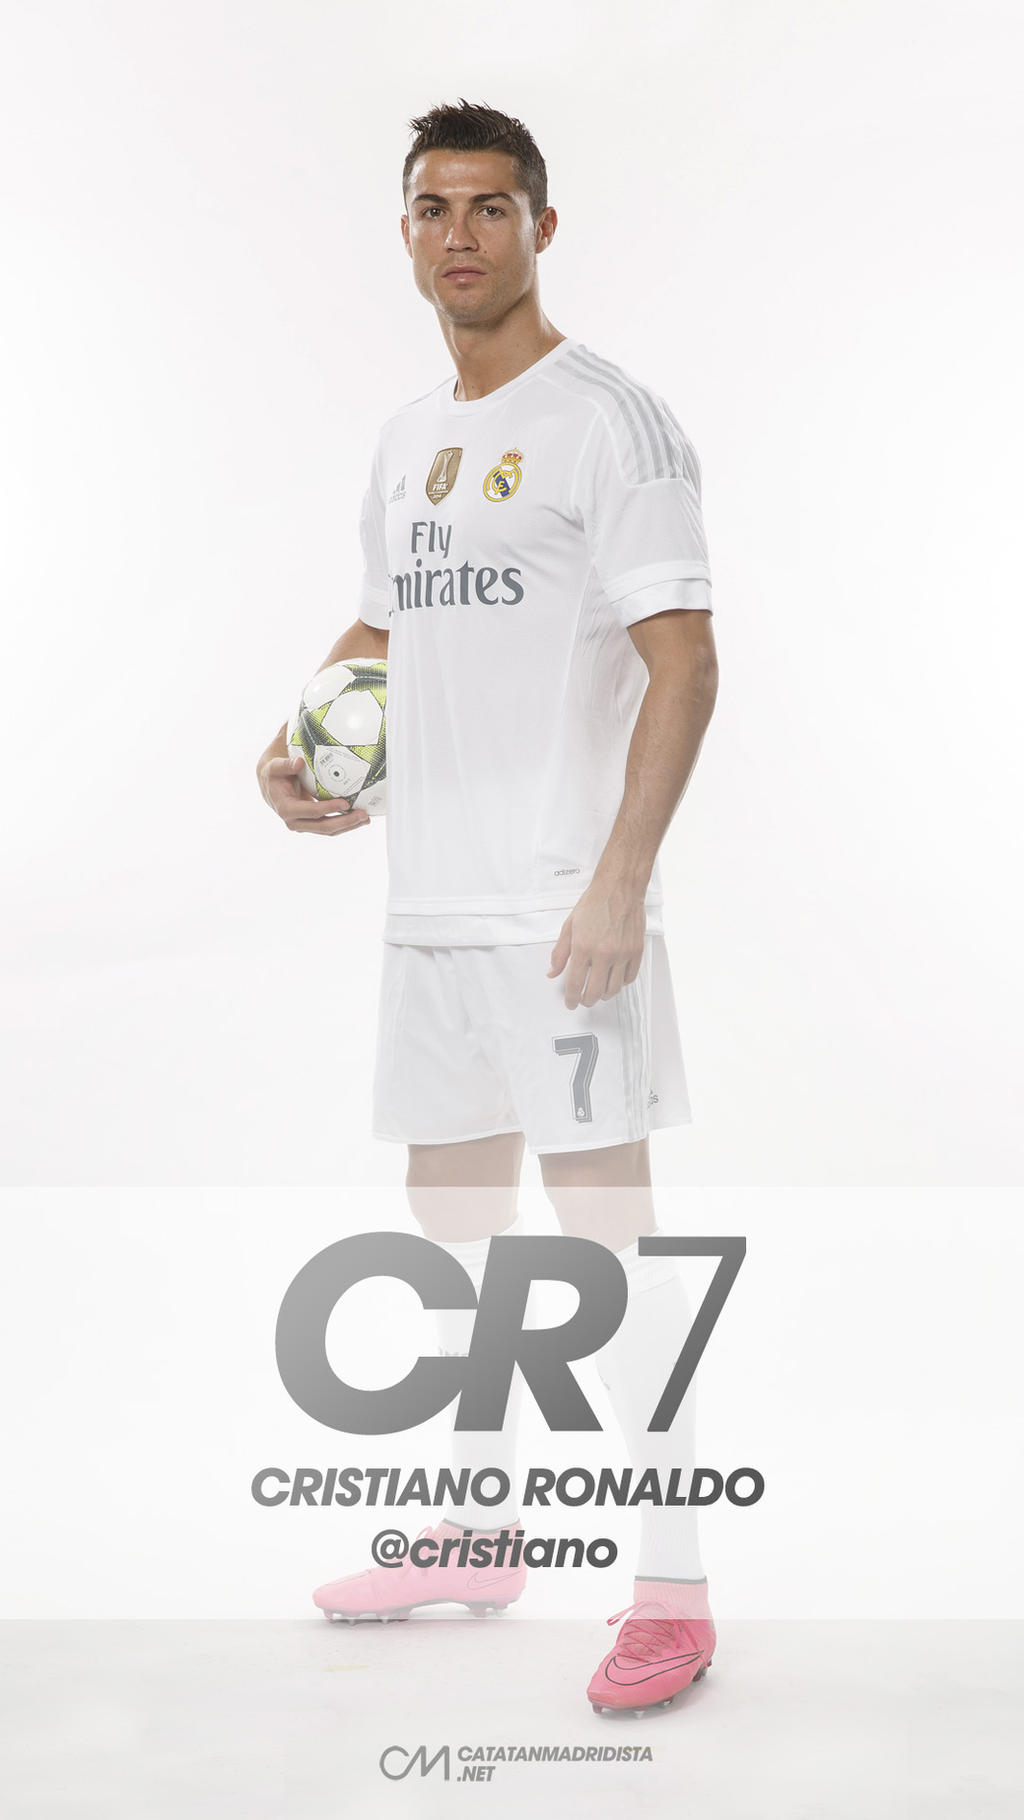 cristiano ronaldo wallpaper for iphone and android